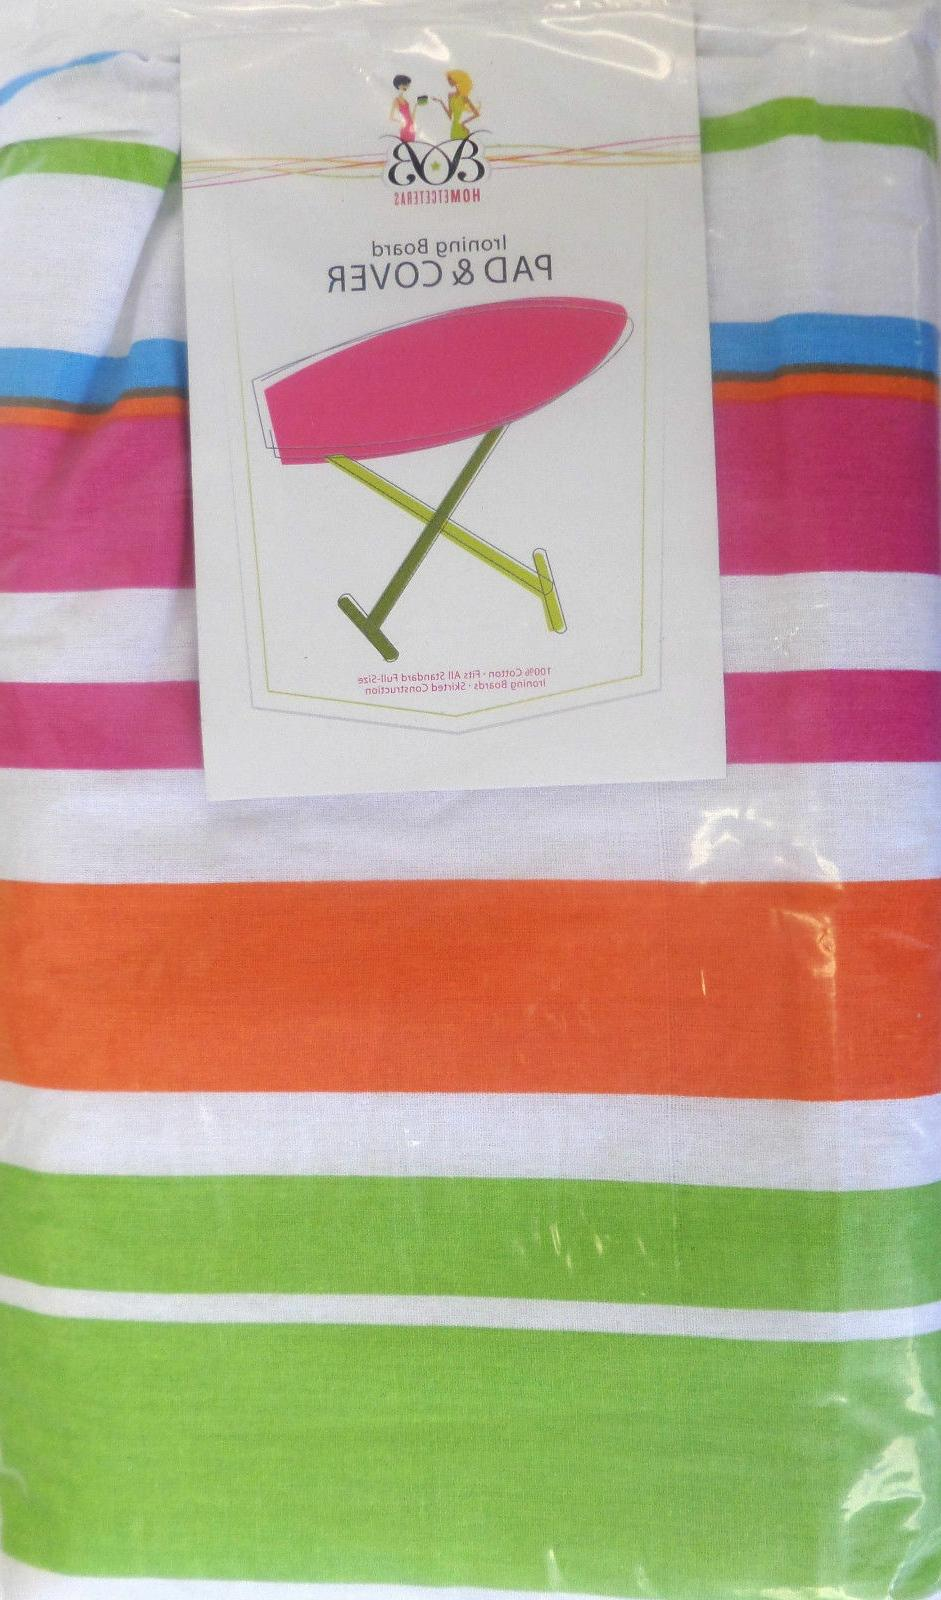 Ironing Cover Pad - Floral, Stripes & Patterns